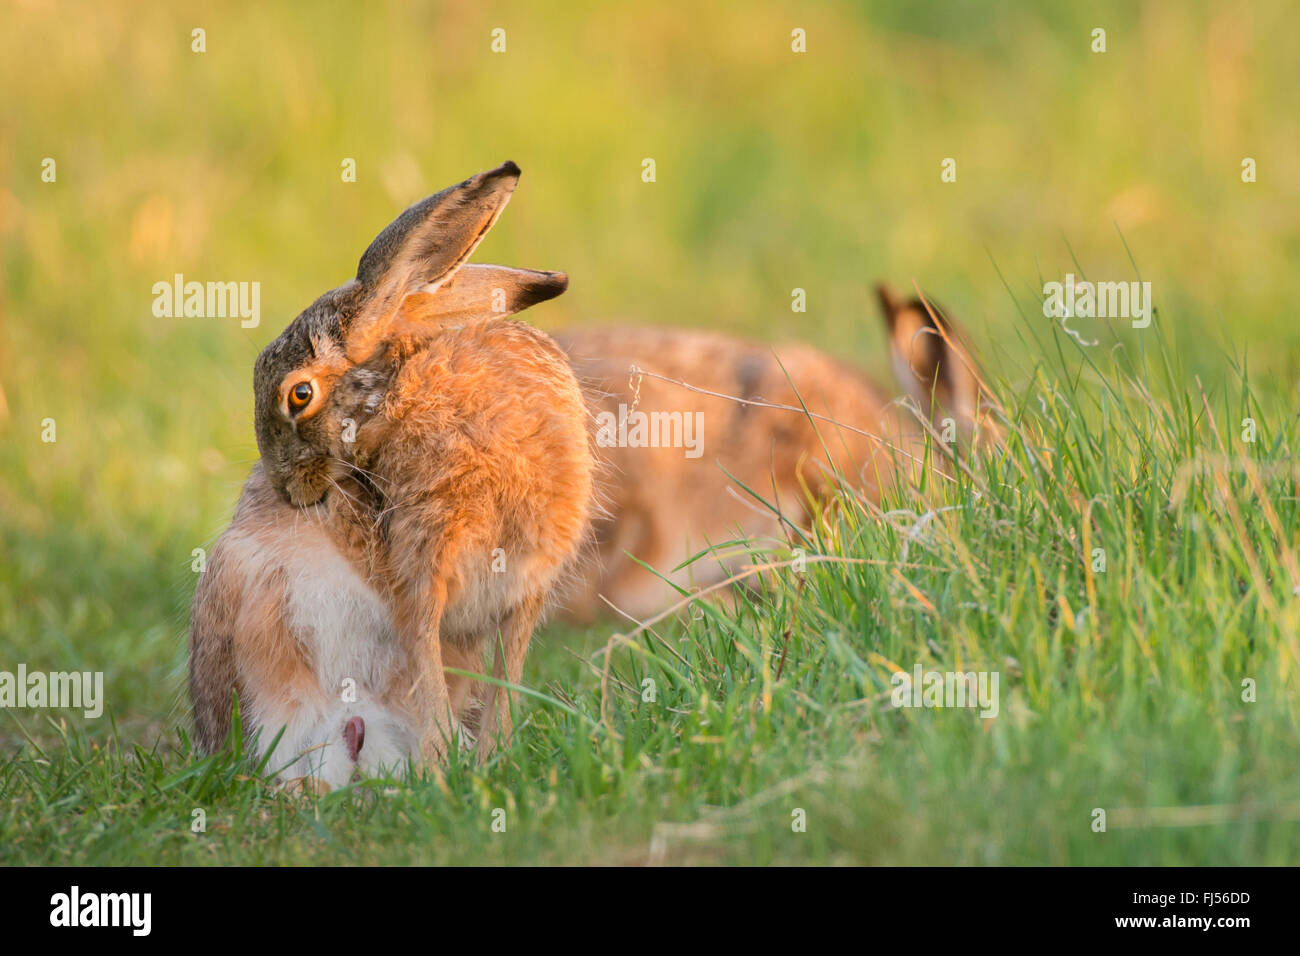 European hare, Brown hare (Lepus europaeus), cares of its fur, Germany, Brandenburg - Stock Image